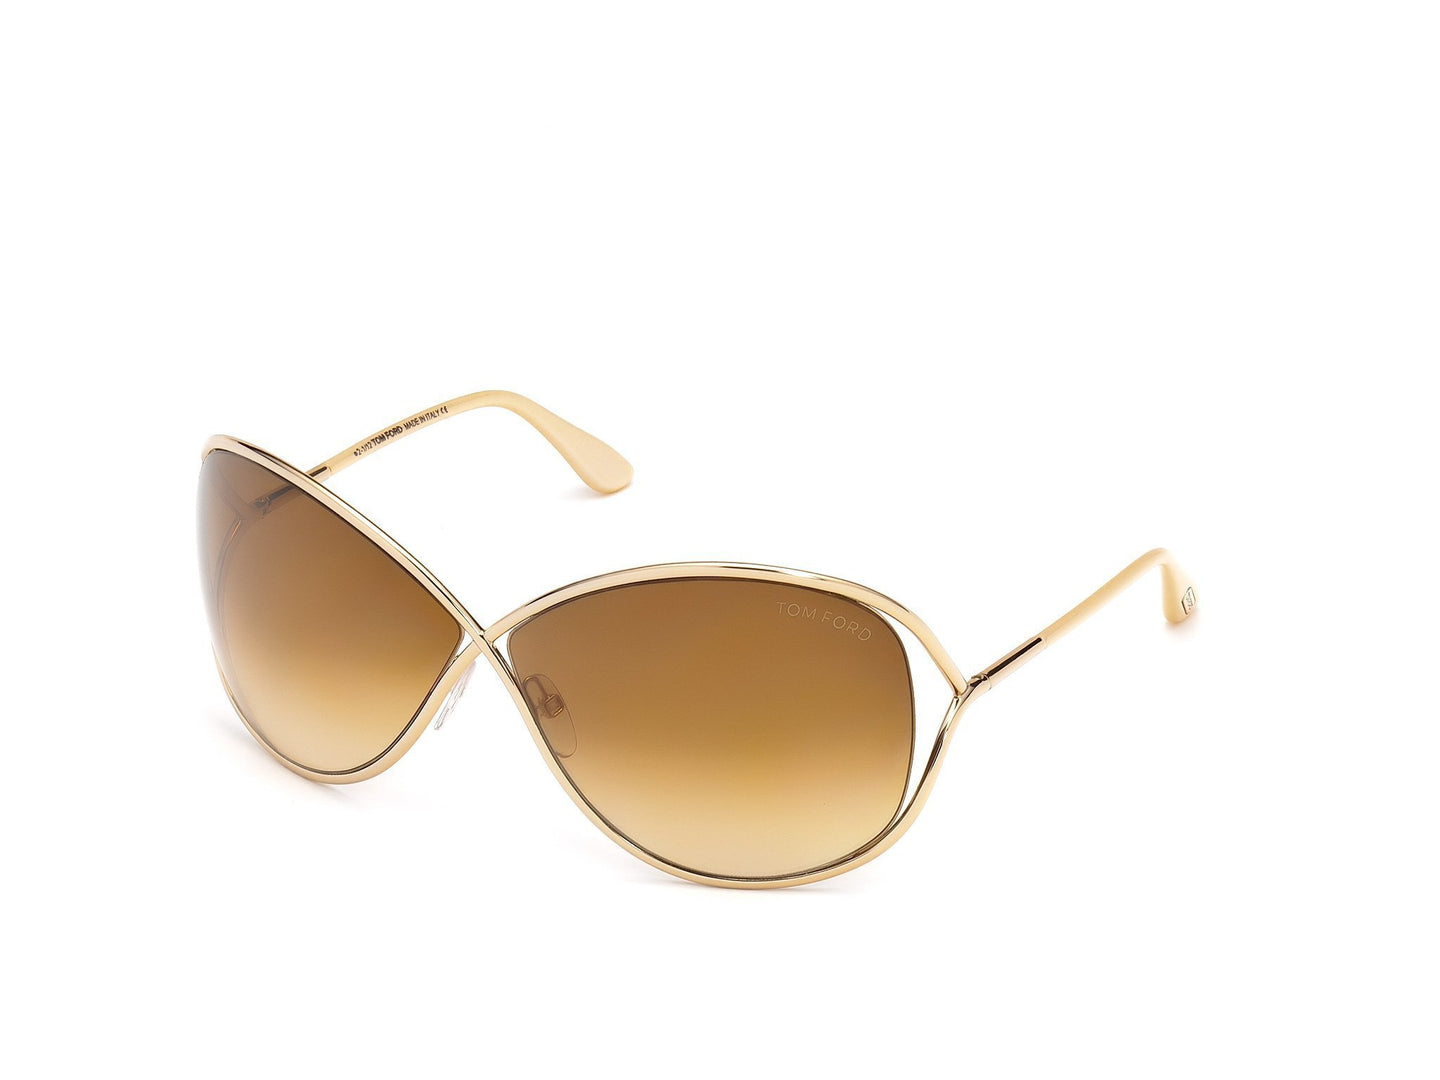 Tom Ford Sunglass-FT0130